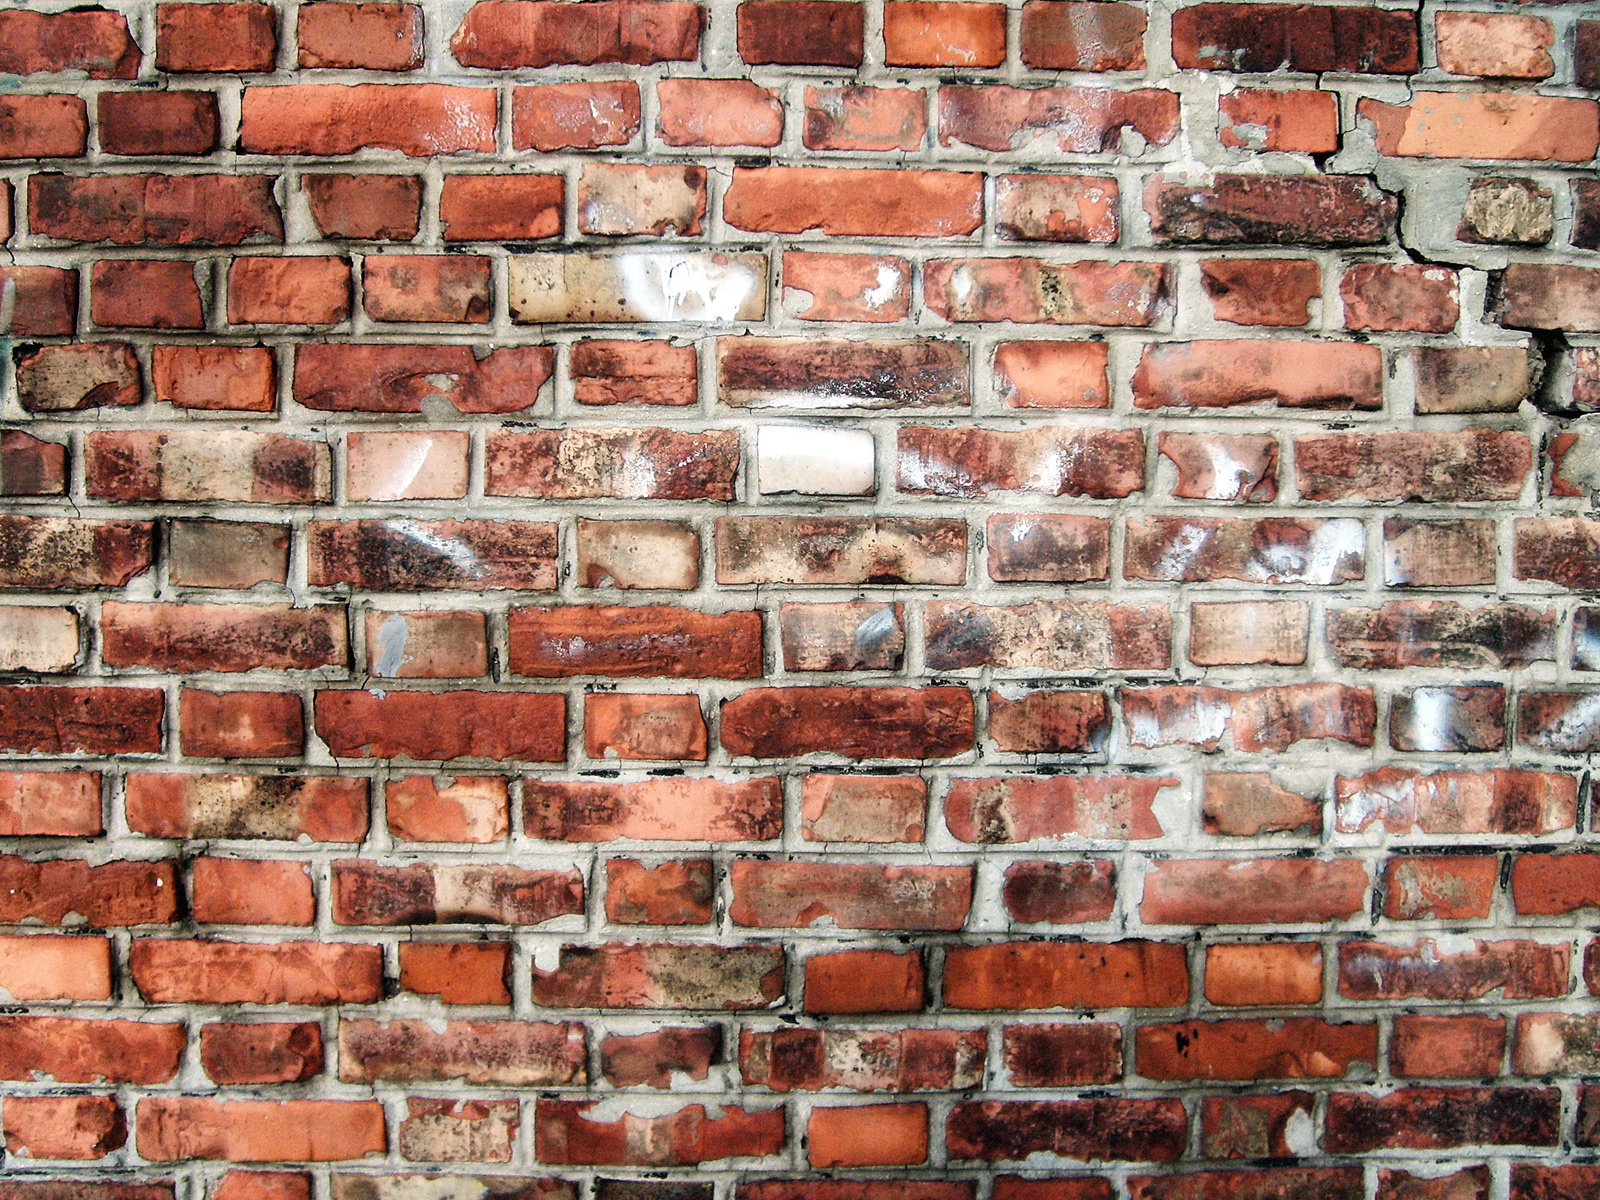 The brick wall free wallpaper flickr photo sharing - Pictures of brick wallpaper ...